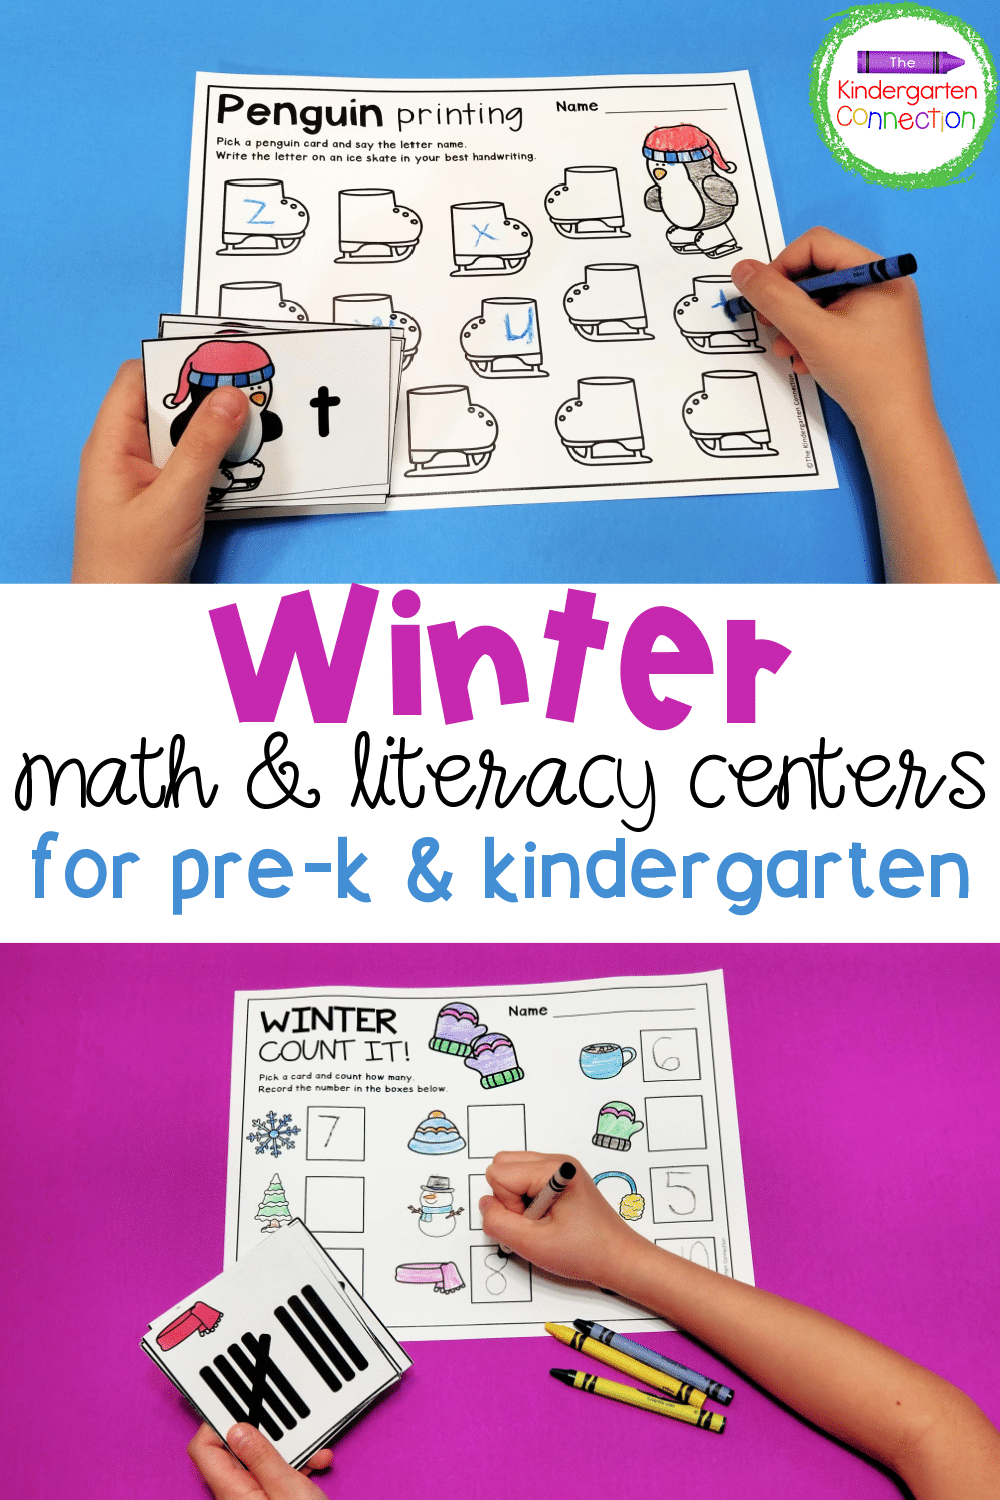 These low-prep Winter Centers for Pre-K & Kindergarten are great to work on letters, sight words, numbers, shapes, and so much more!